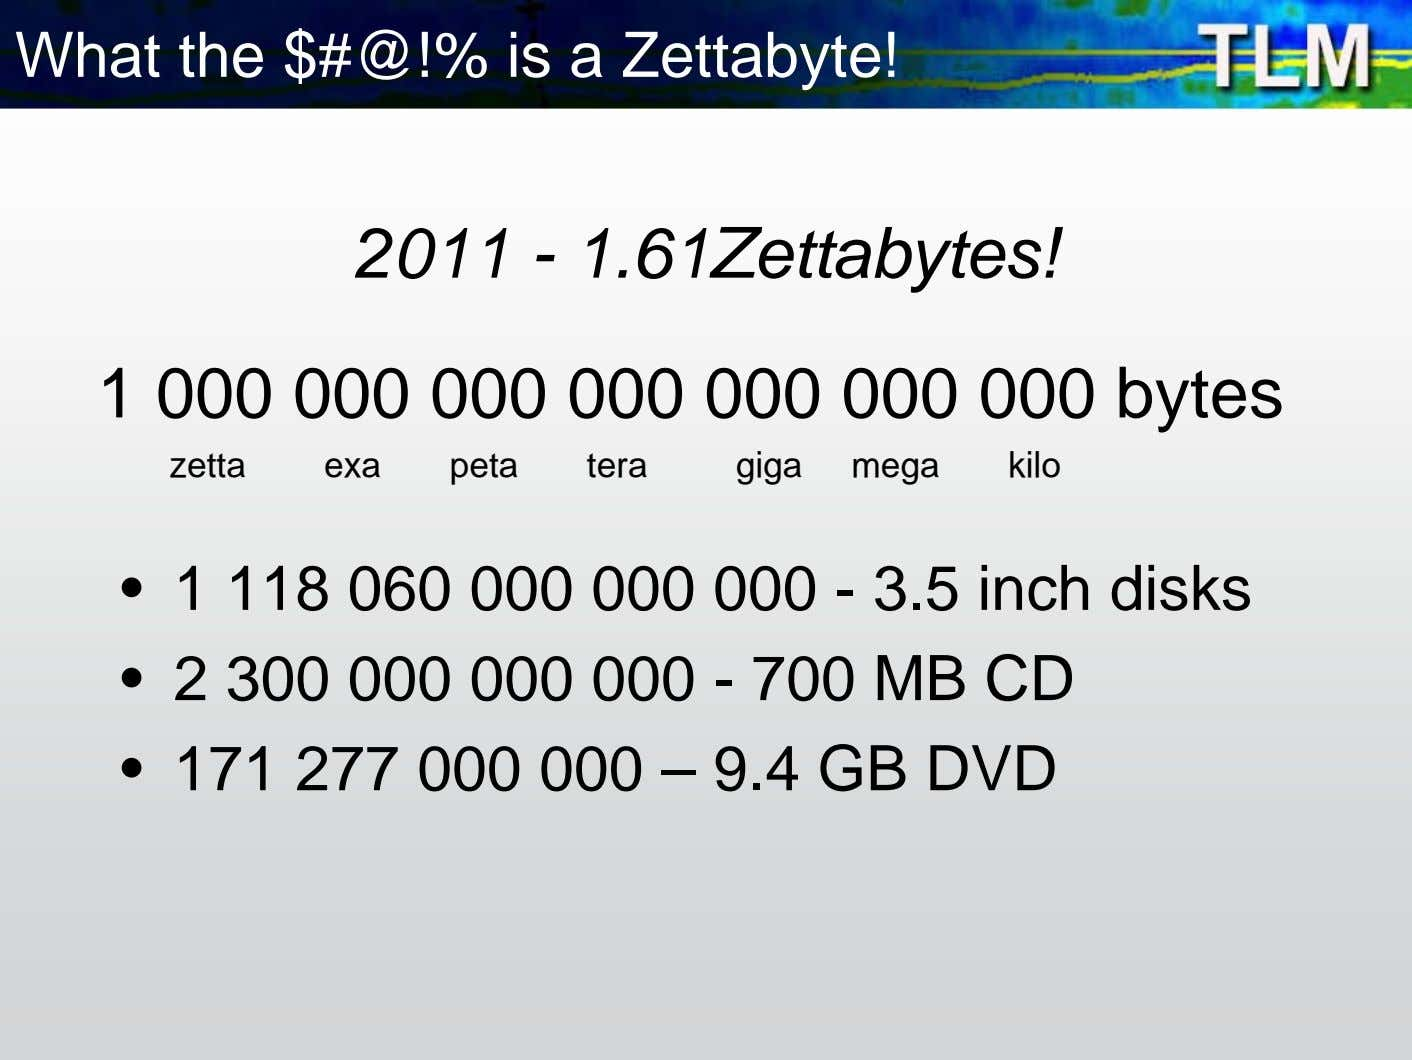 What the $#@!% is a Zettabyte! 2011 - 1.61Zettabytes! 1 000 000 000 000 000